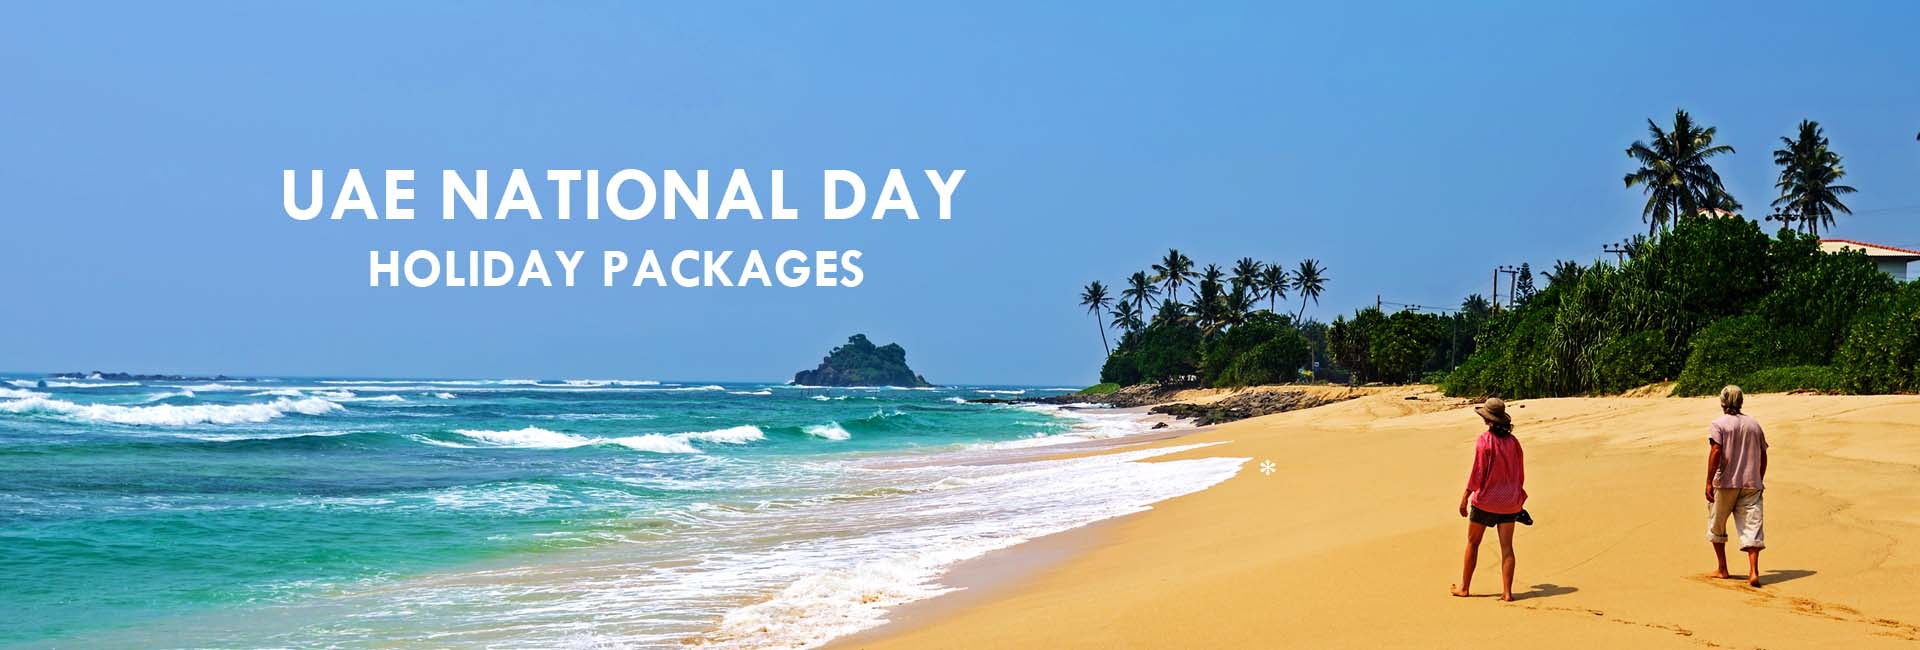 UAE national day holiday packages 2018